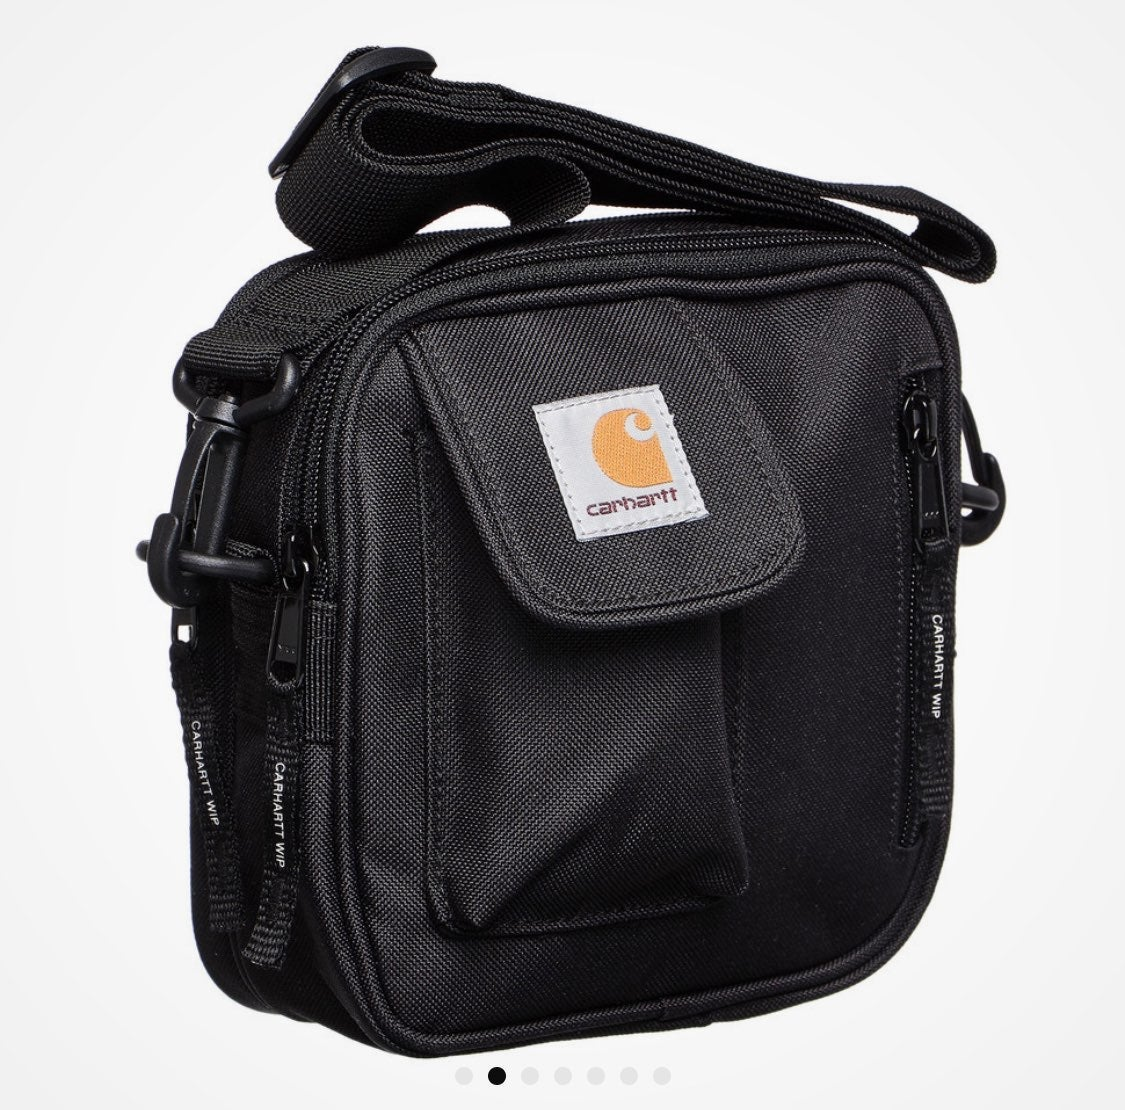 CARHARTT WIP ESSENTIALS BAG BLACK NWT